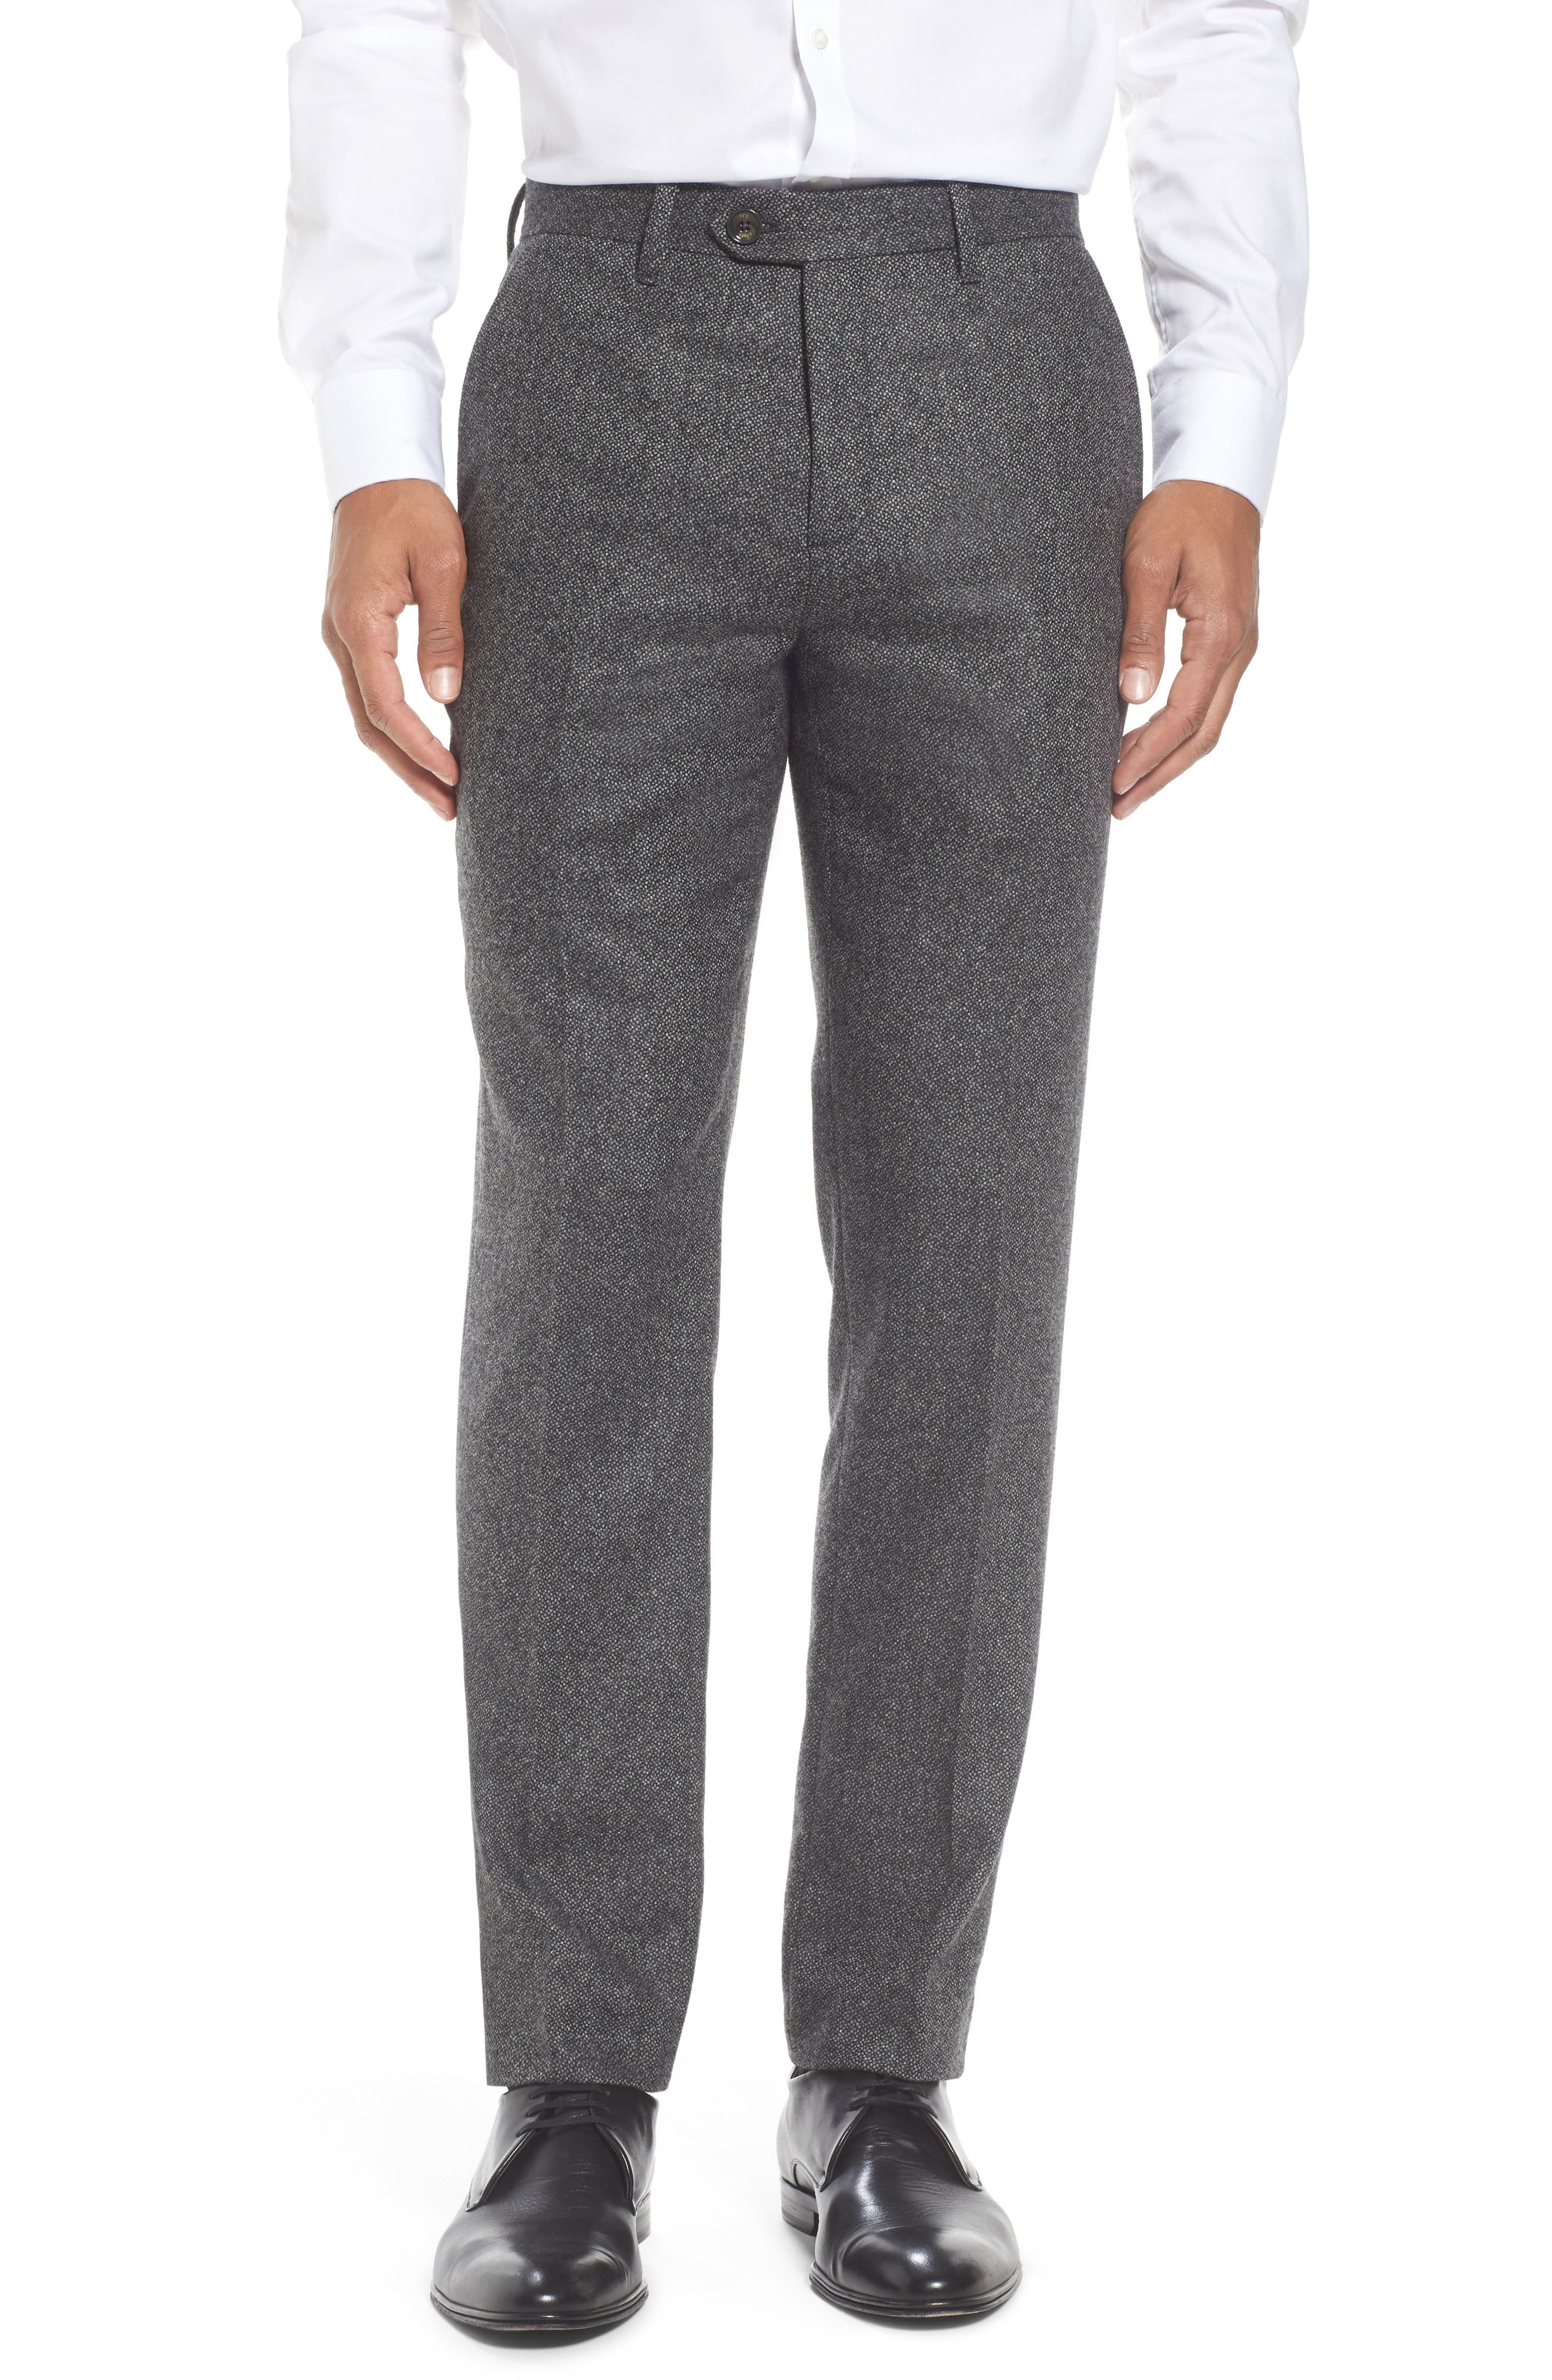 Modern Slim Fit Trousers,                         Main,                         color, Charcoal